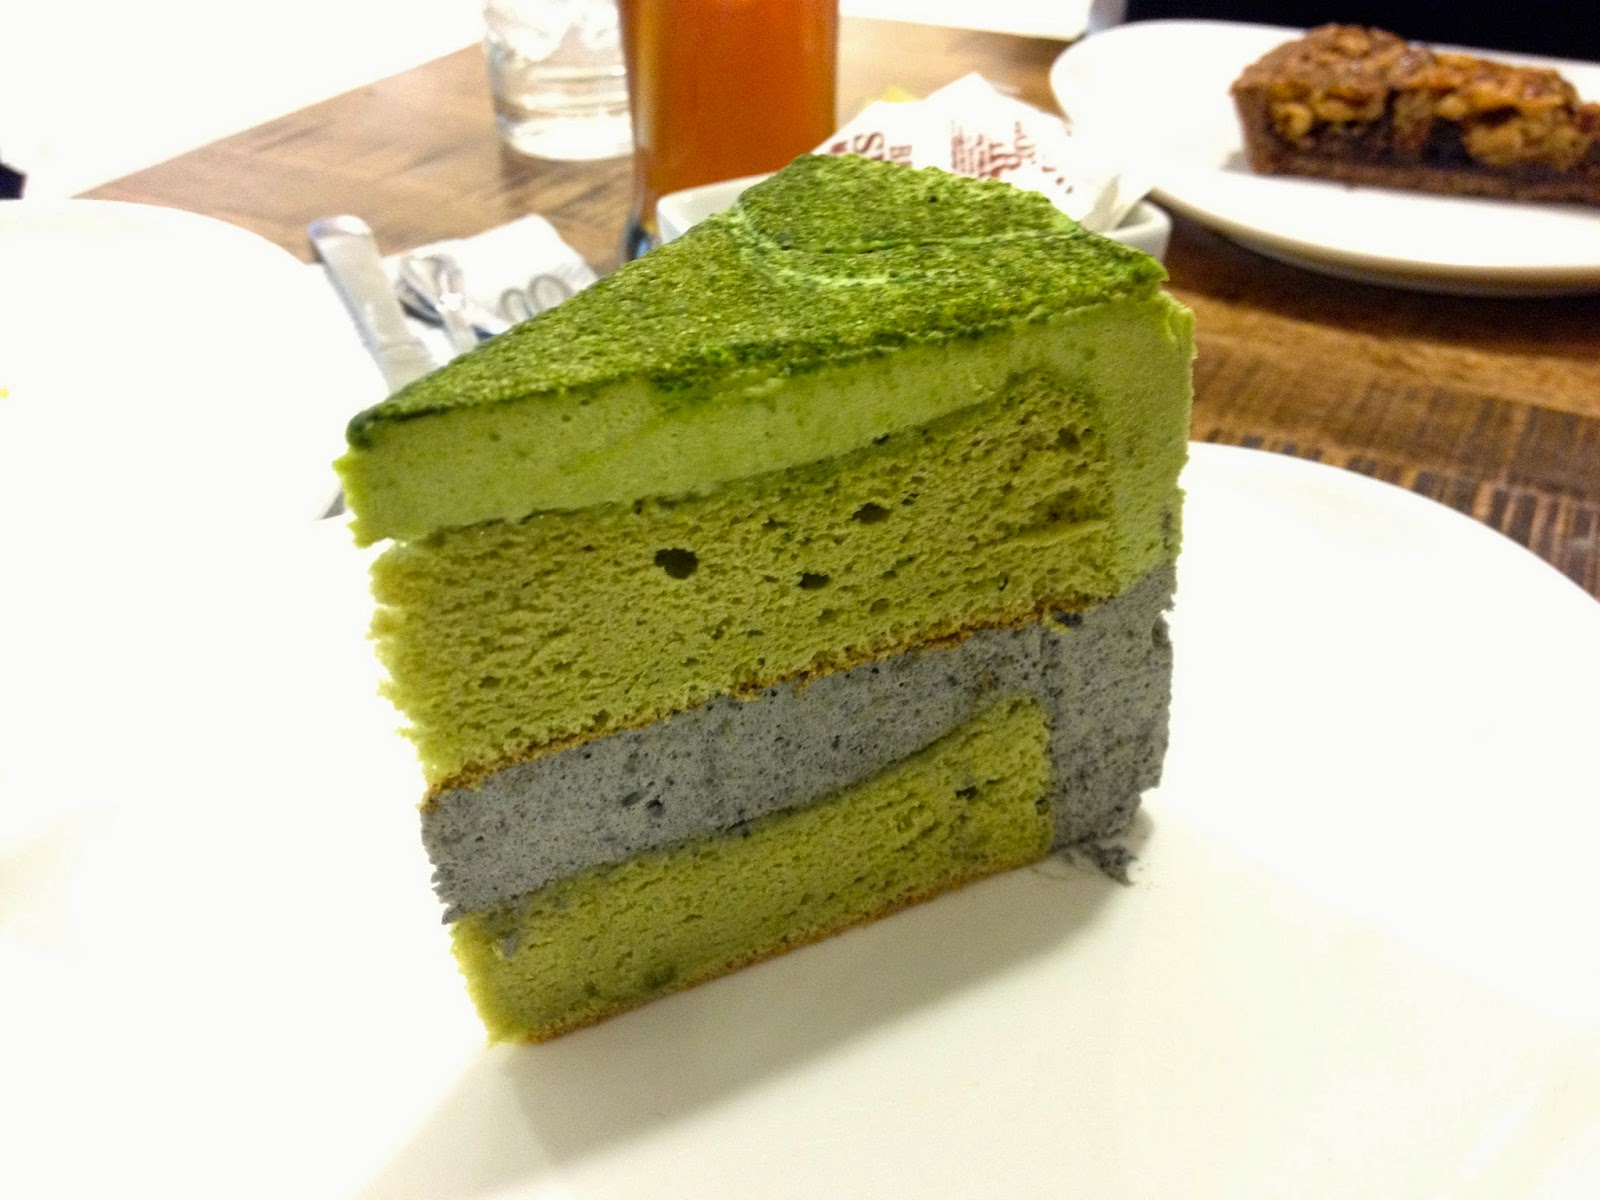 Treats Street Cafe's Tea-flavored cake